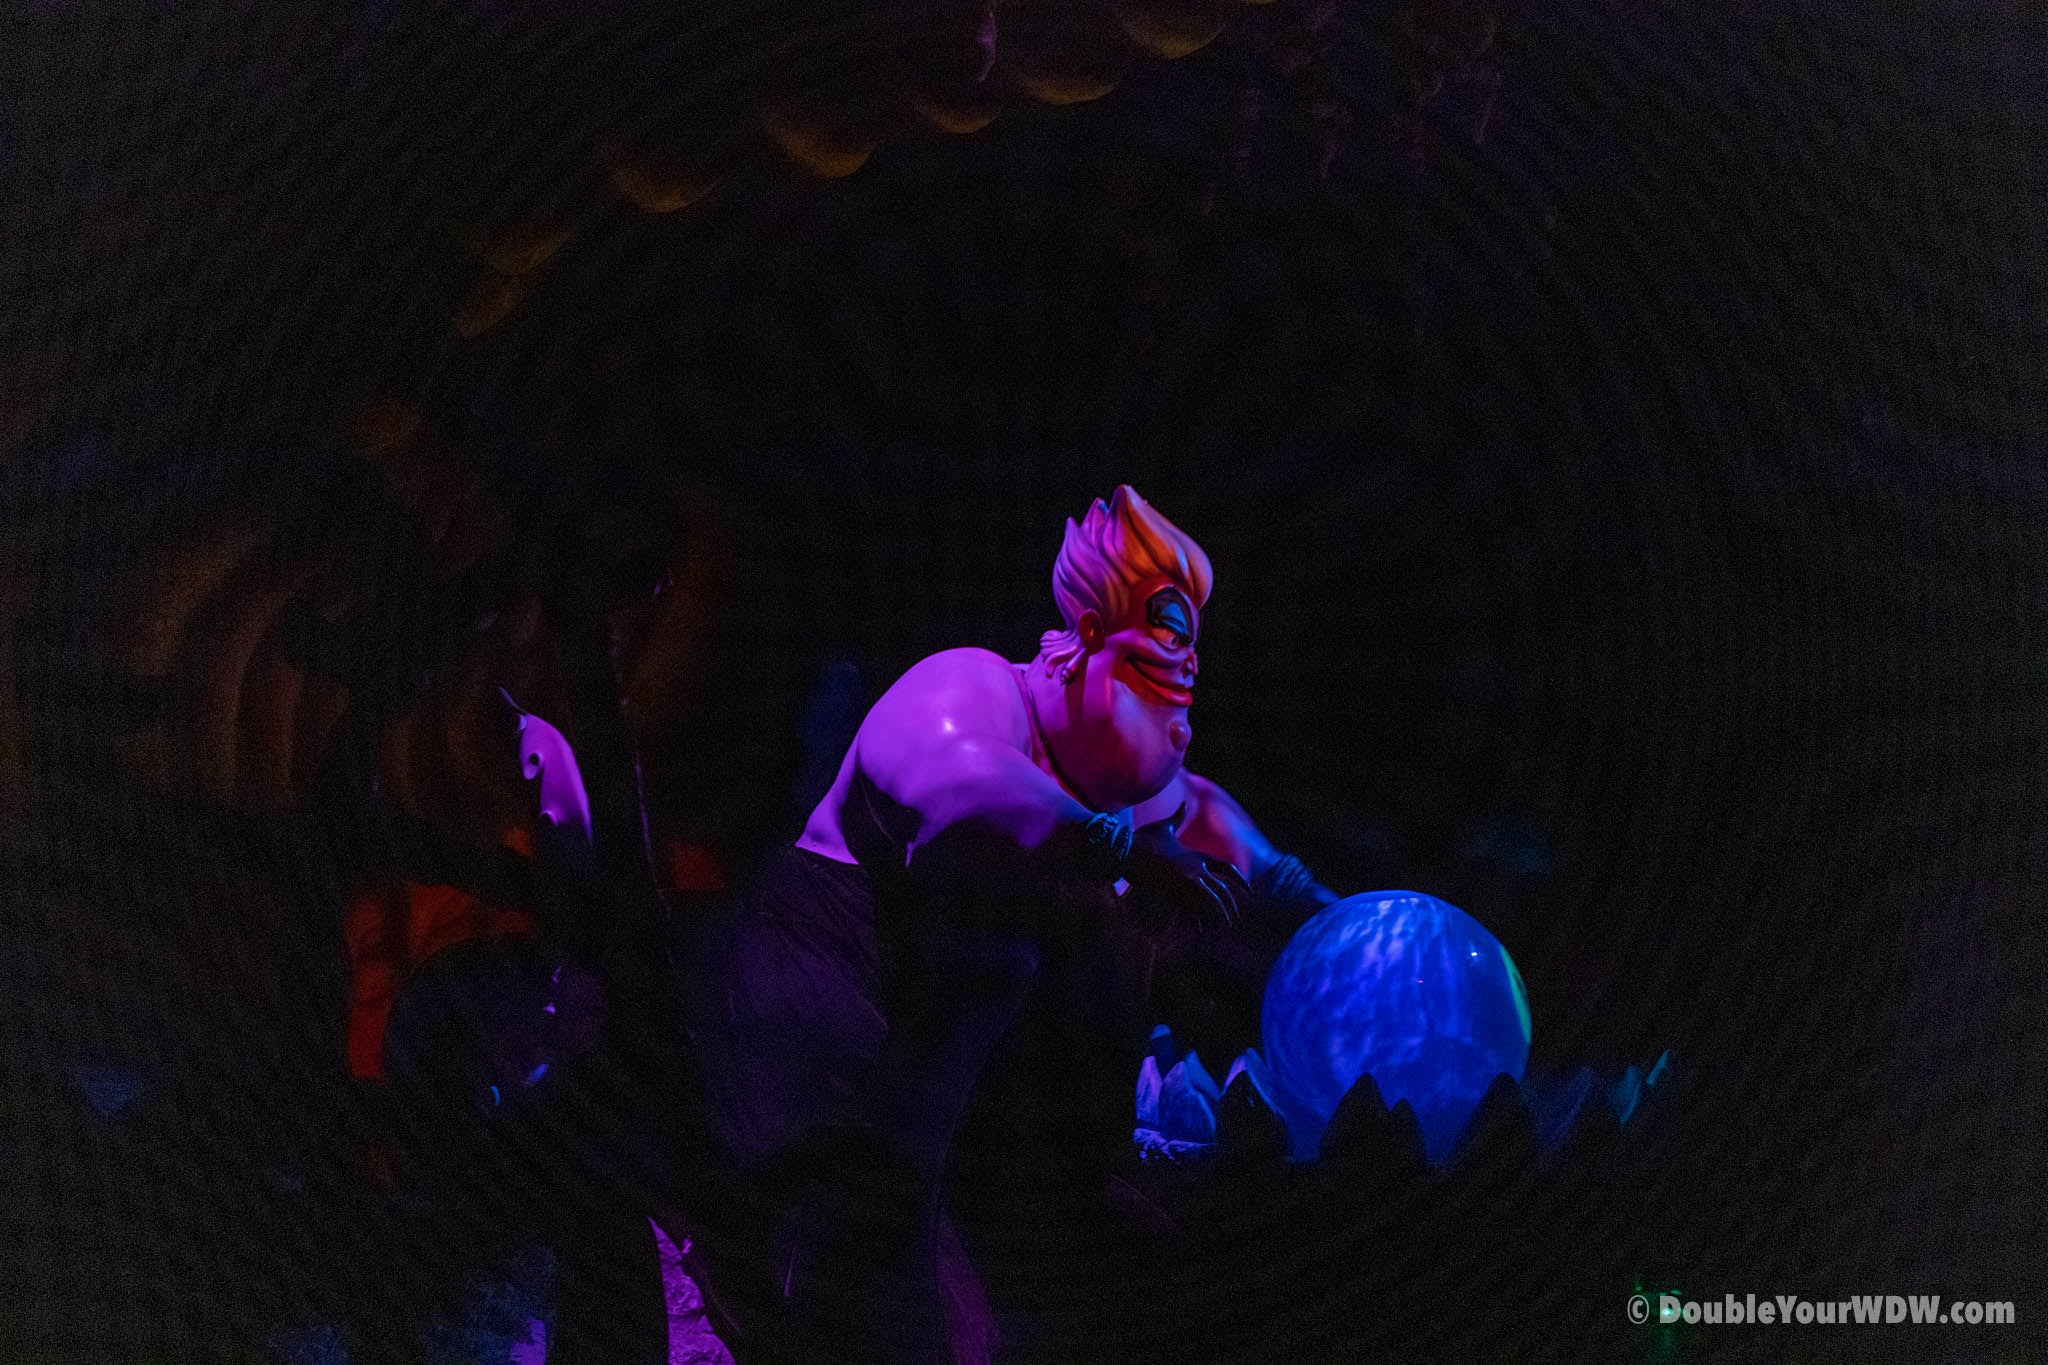 Ursula at the Voyage of the little mermaid